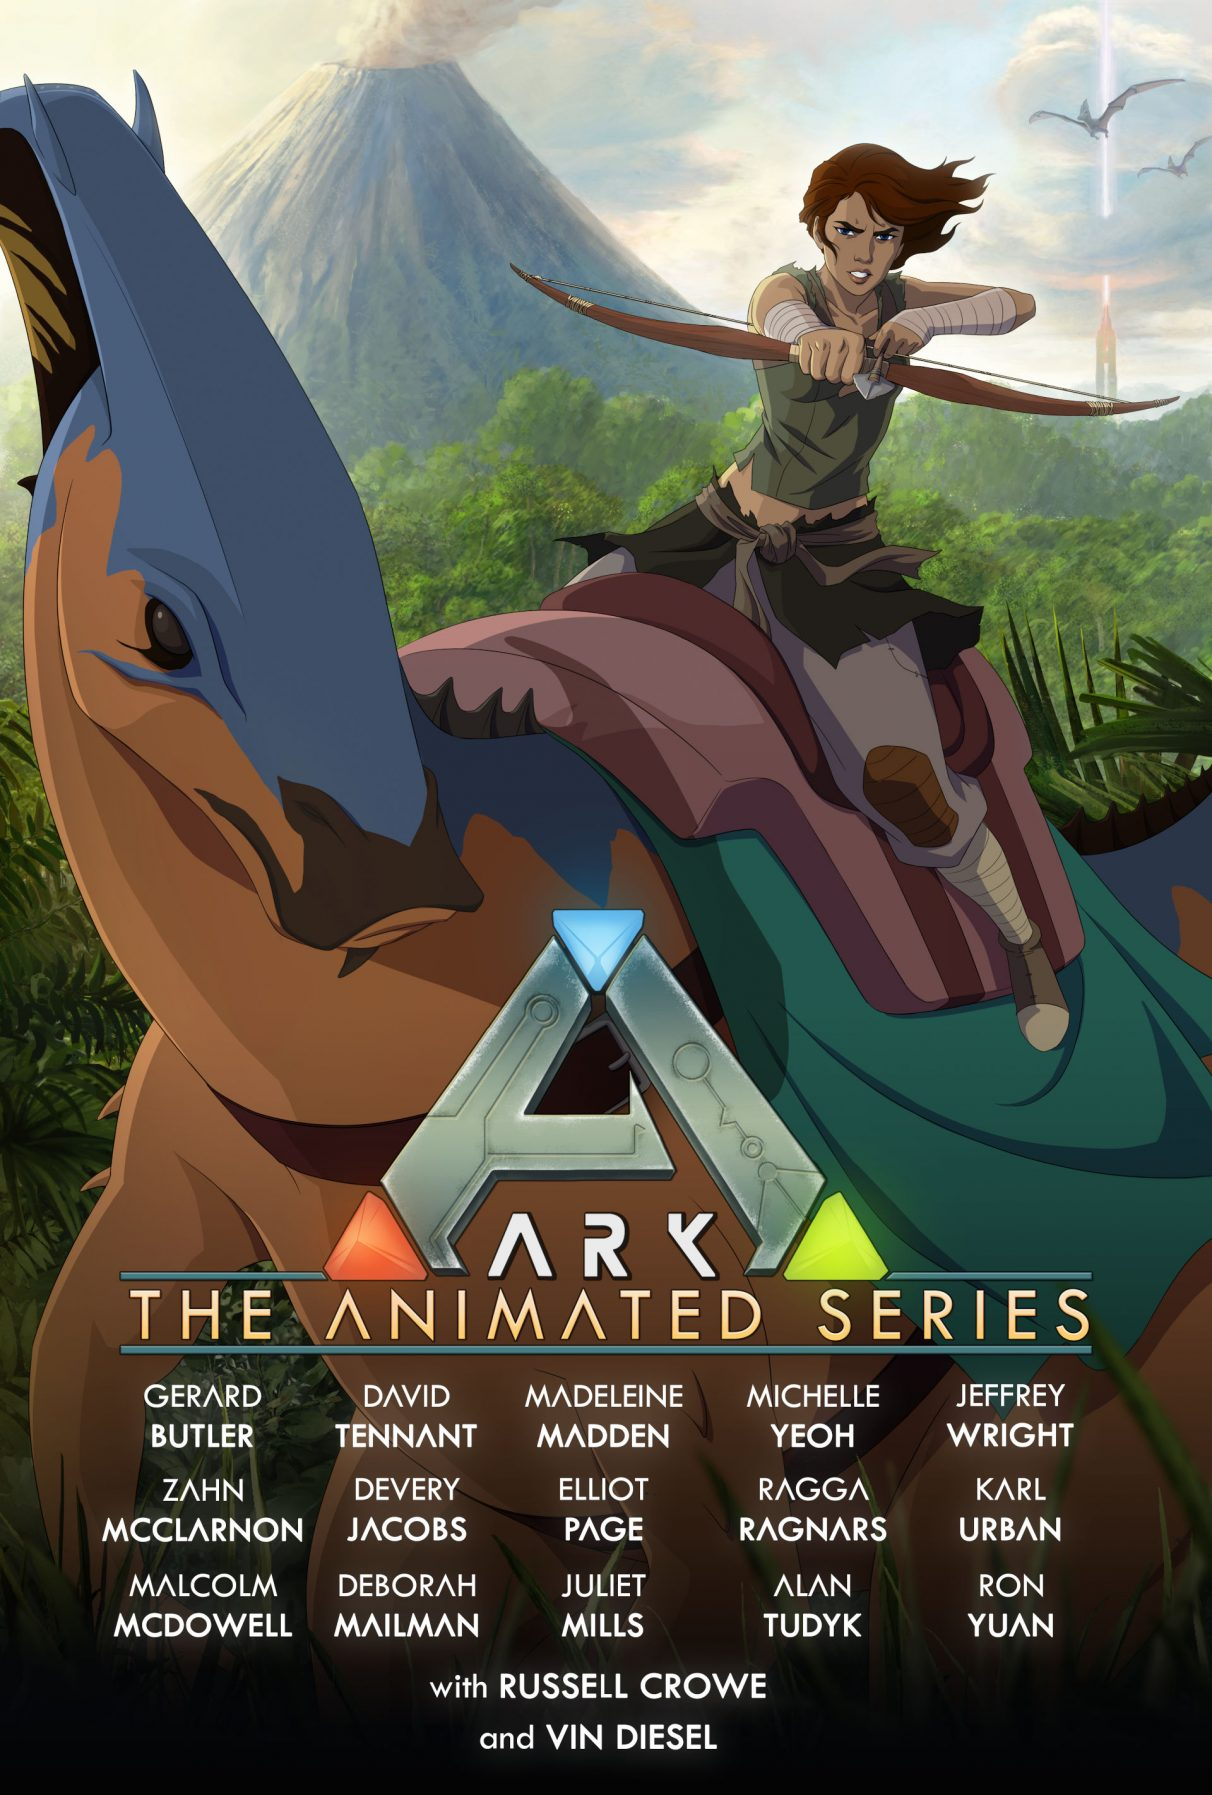 The poster for Ark: The Animated Series, listing its voice cast.